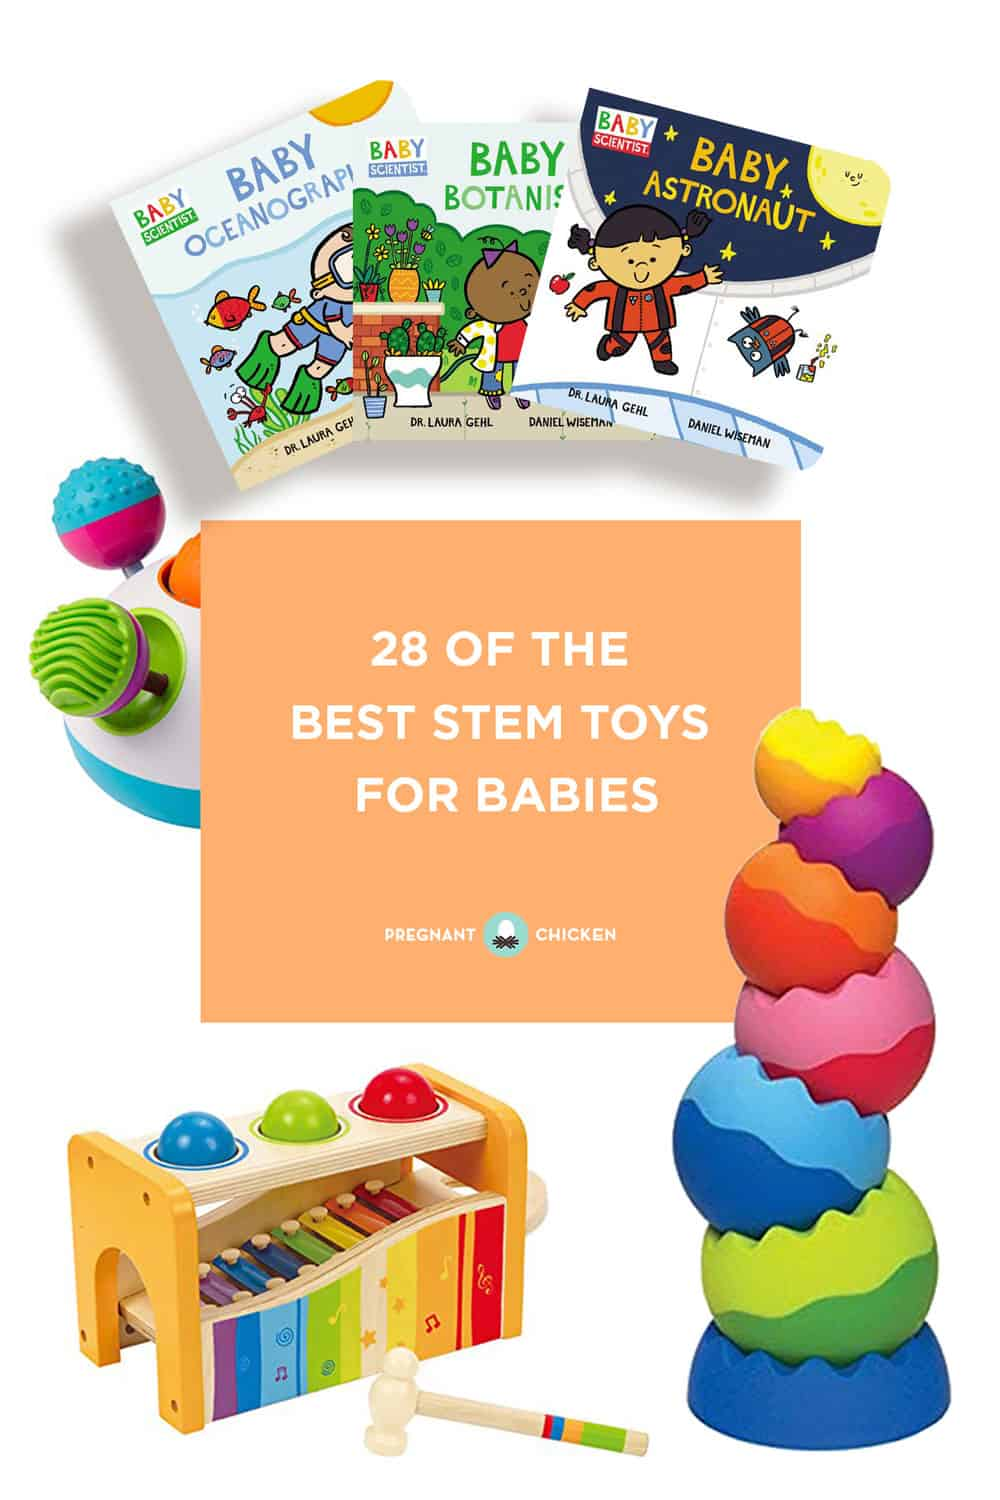 You're never too young to learn about STEM! Here are 28 different STEM toys for babies that cover science, technology and engineering, and math including great books from @HarperKids! These ideas are fun for girls or boys! #babygiftidea #educationaltoys #boardbooks